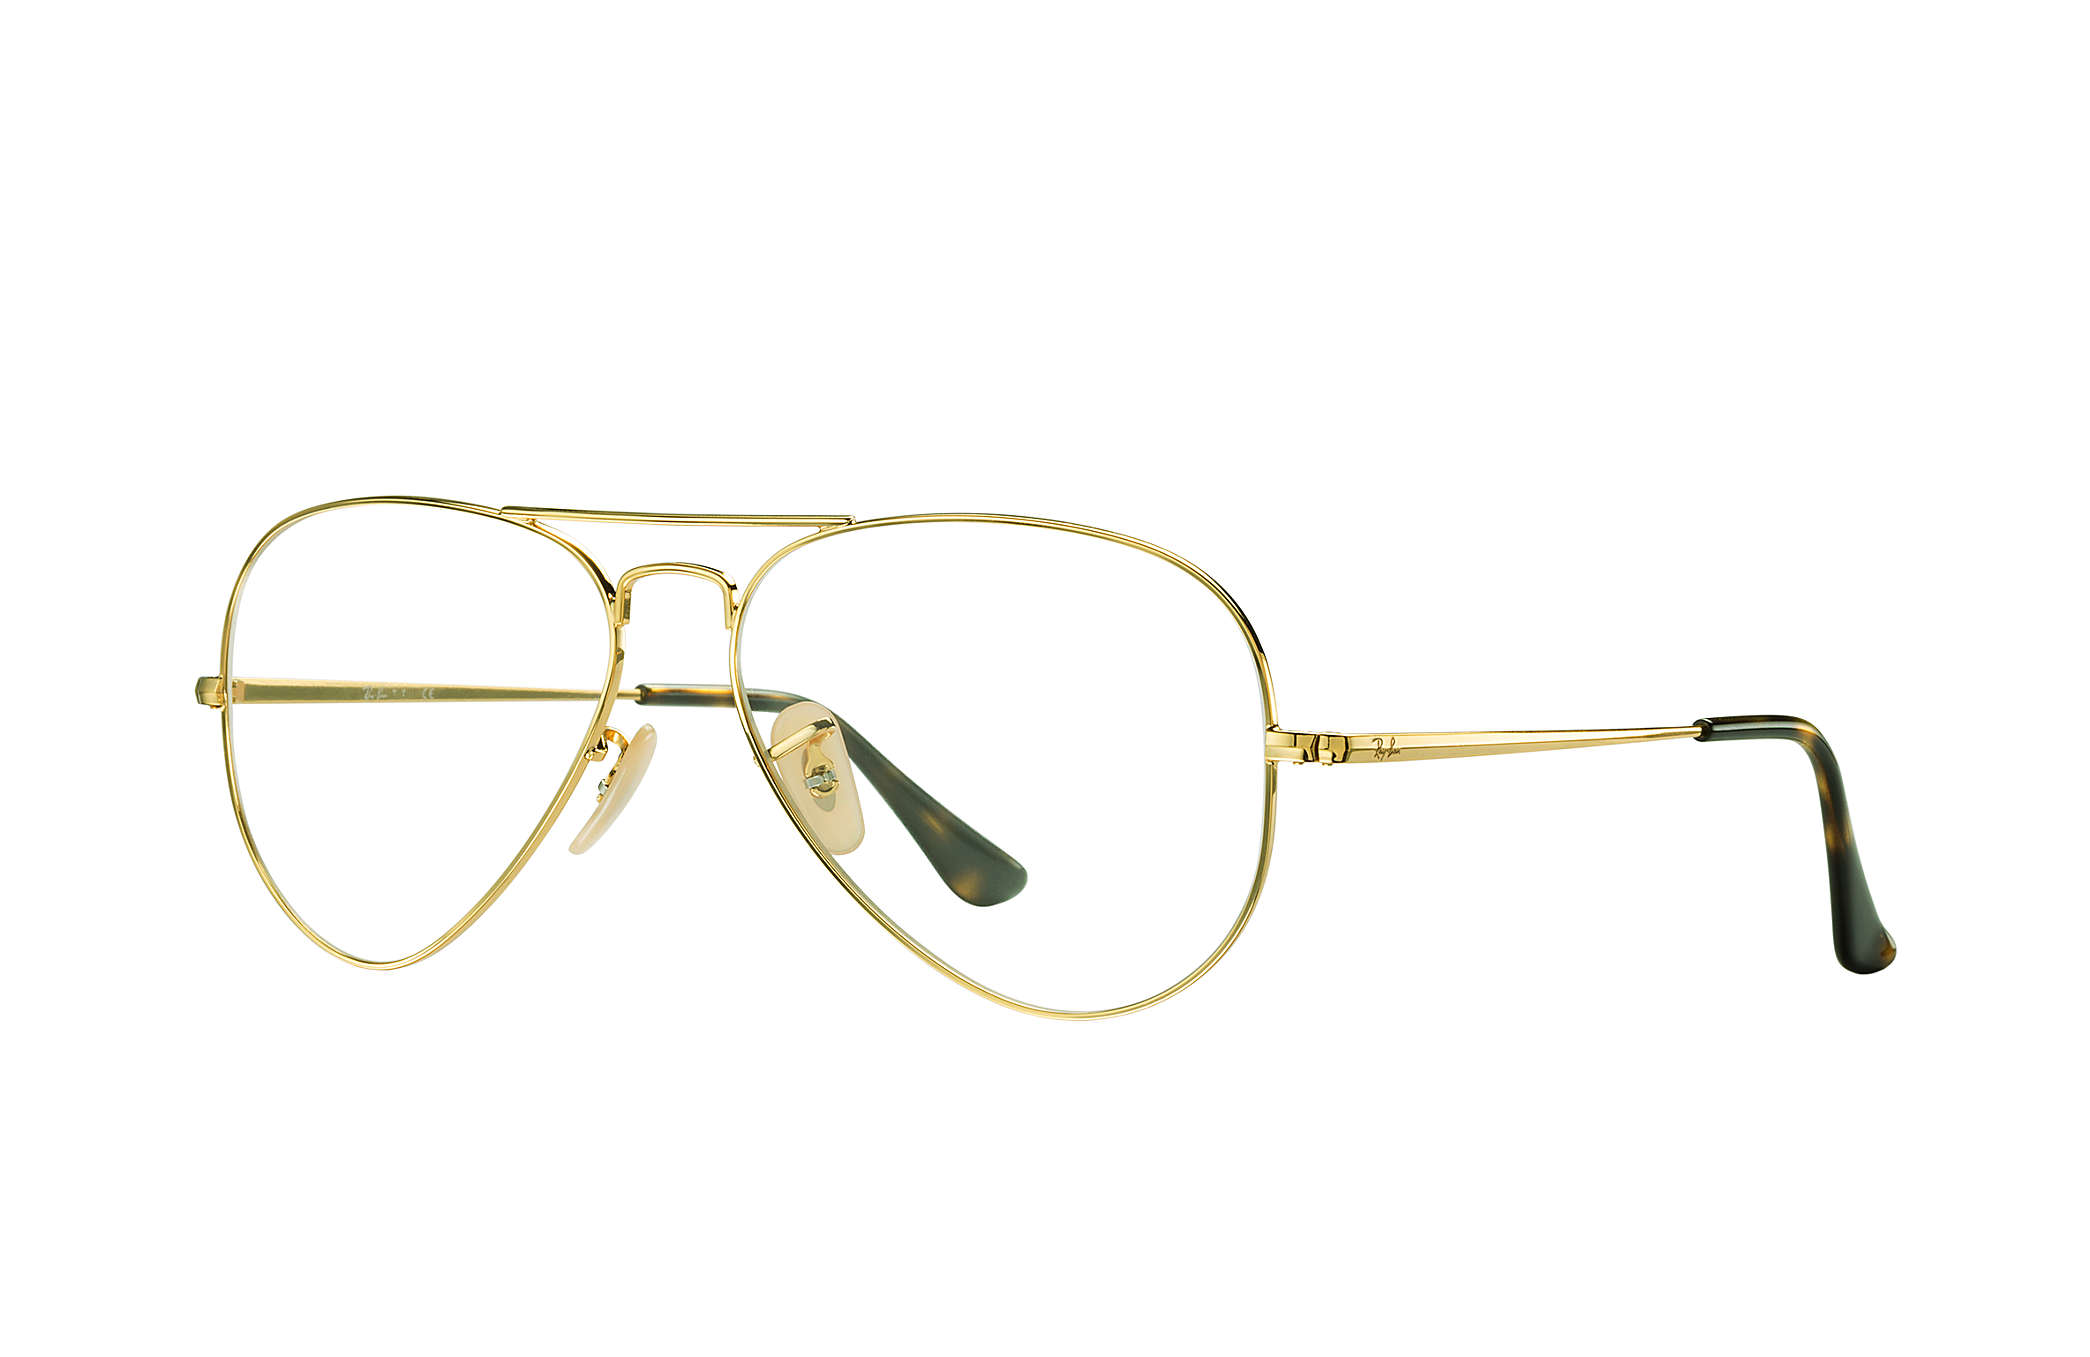 019d5a3f9cf53 Ray Ban The Aviator Optics RB6489 2500 58-14 - Denmead Eyecare